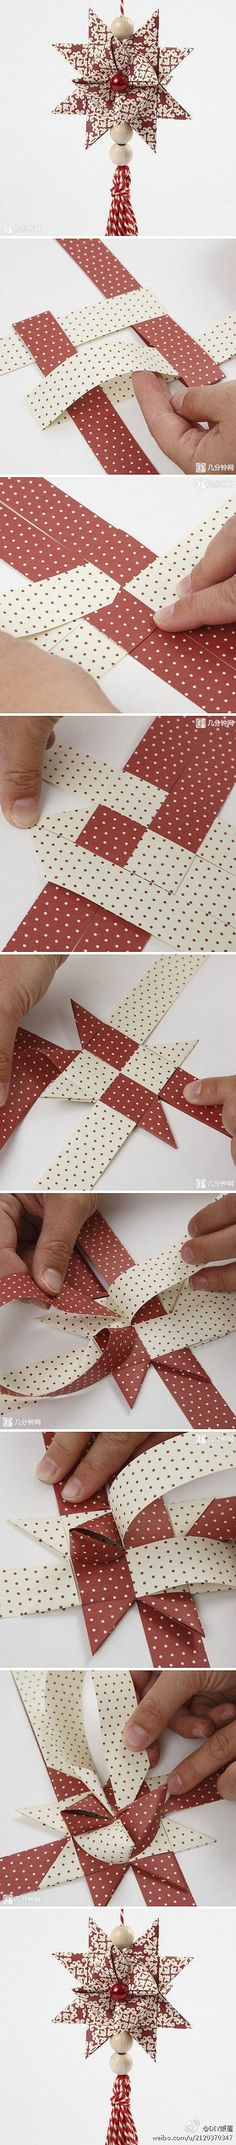 Paper folding decoration